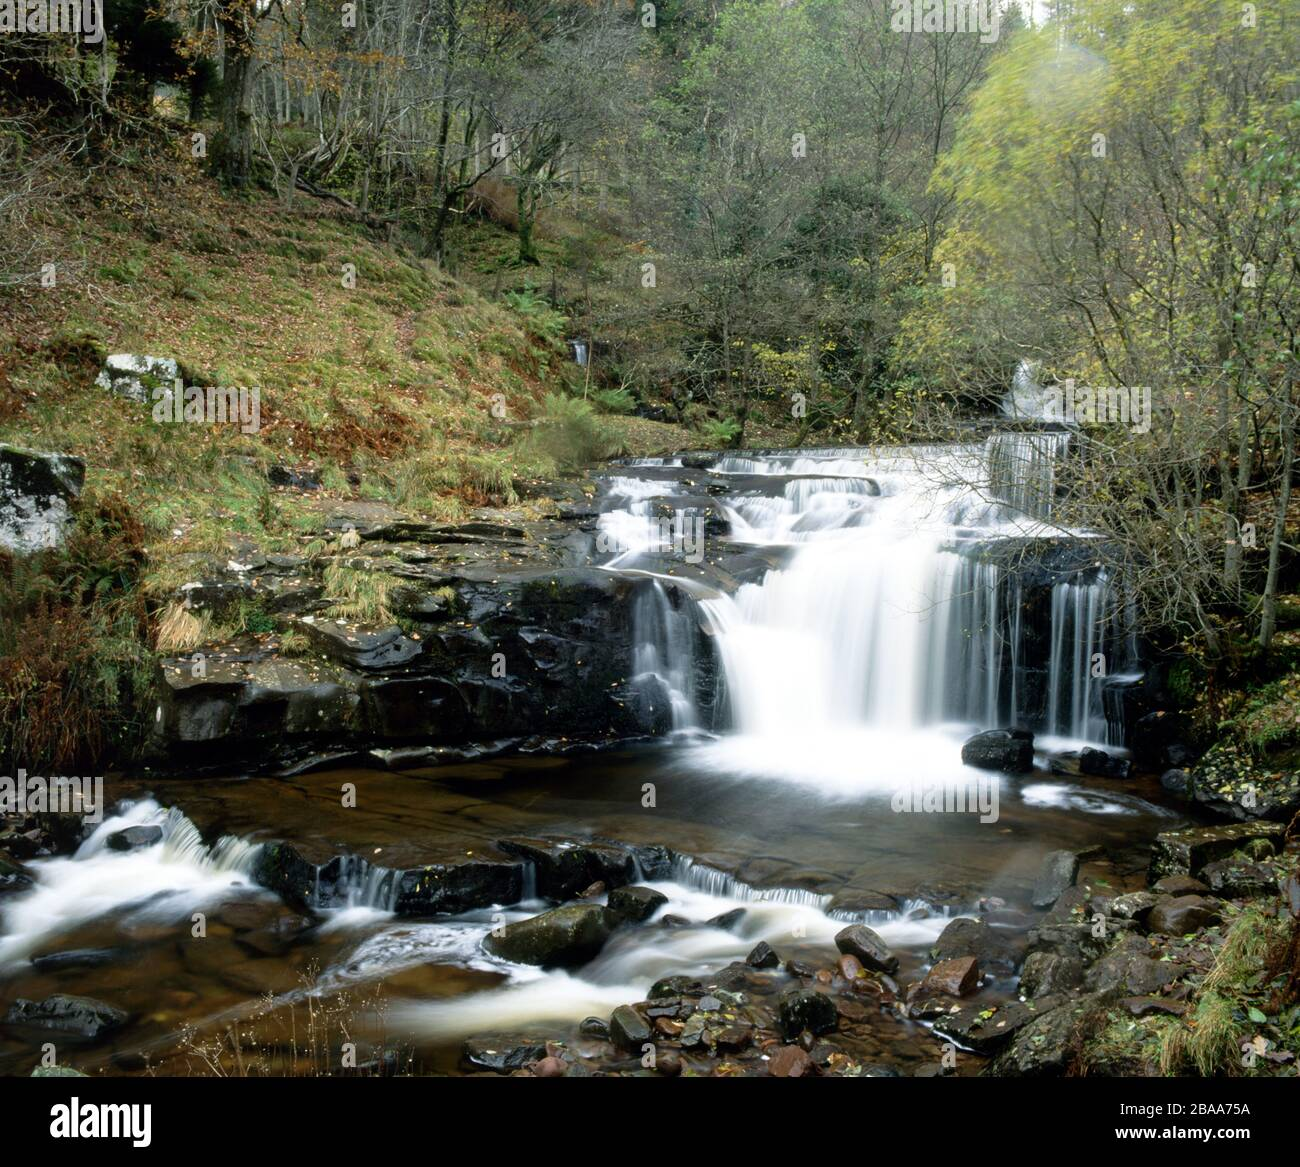 Waterfall on River Caerfanell, Blaen Y Glyn, Brecon Beacons National Park, Powys, Wales. Stock Photo